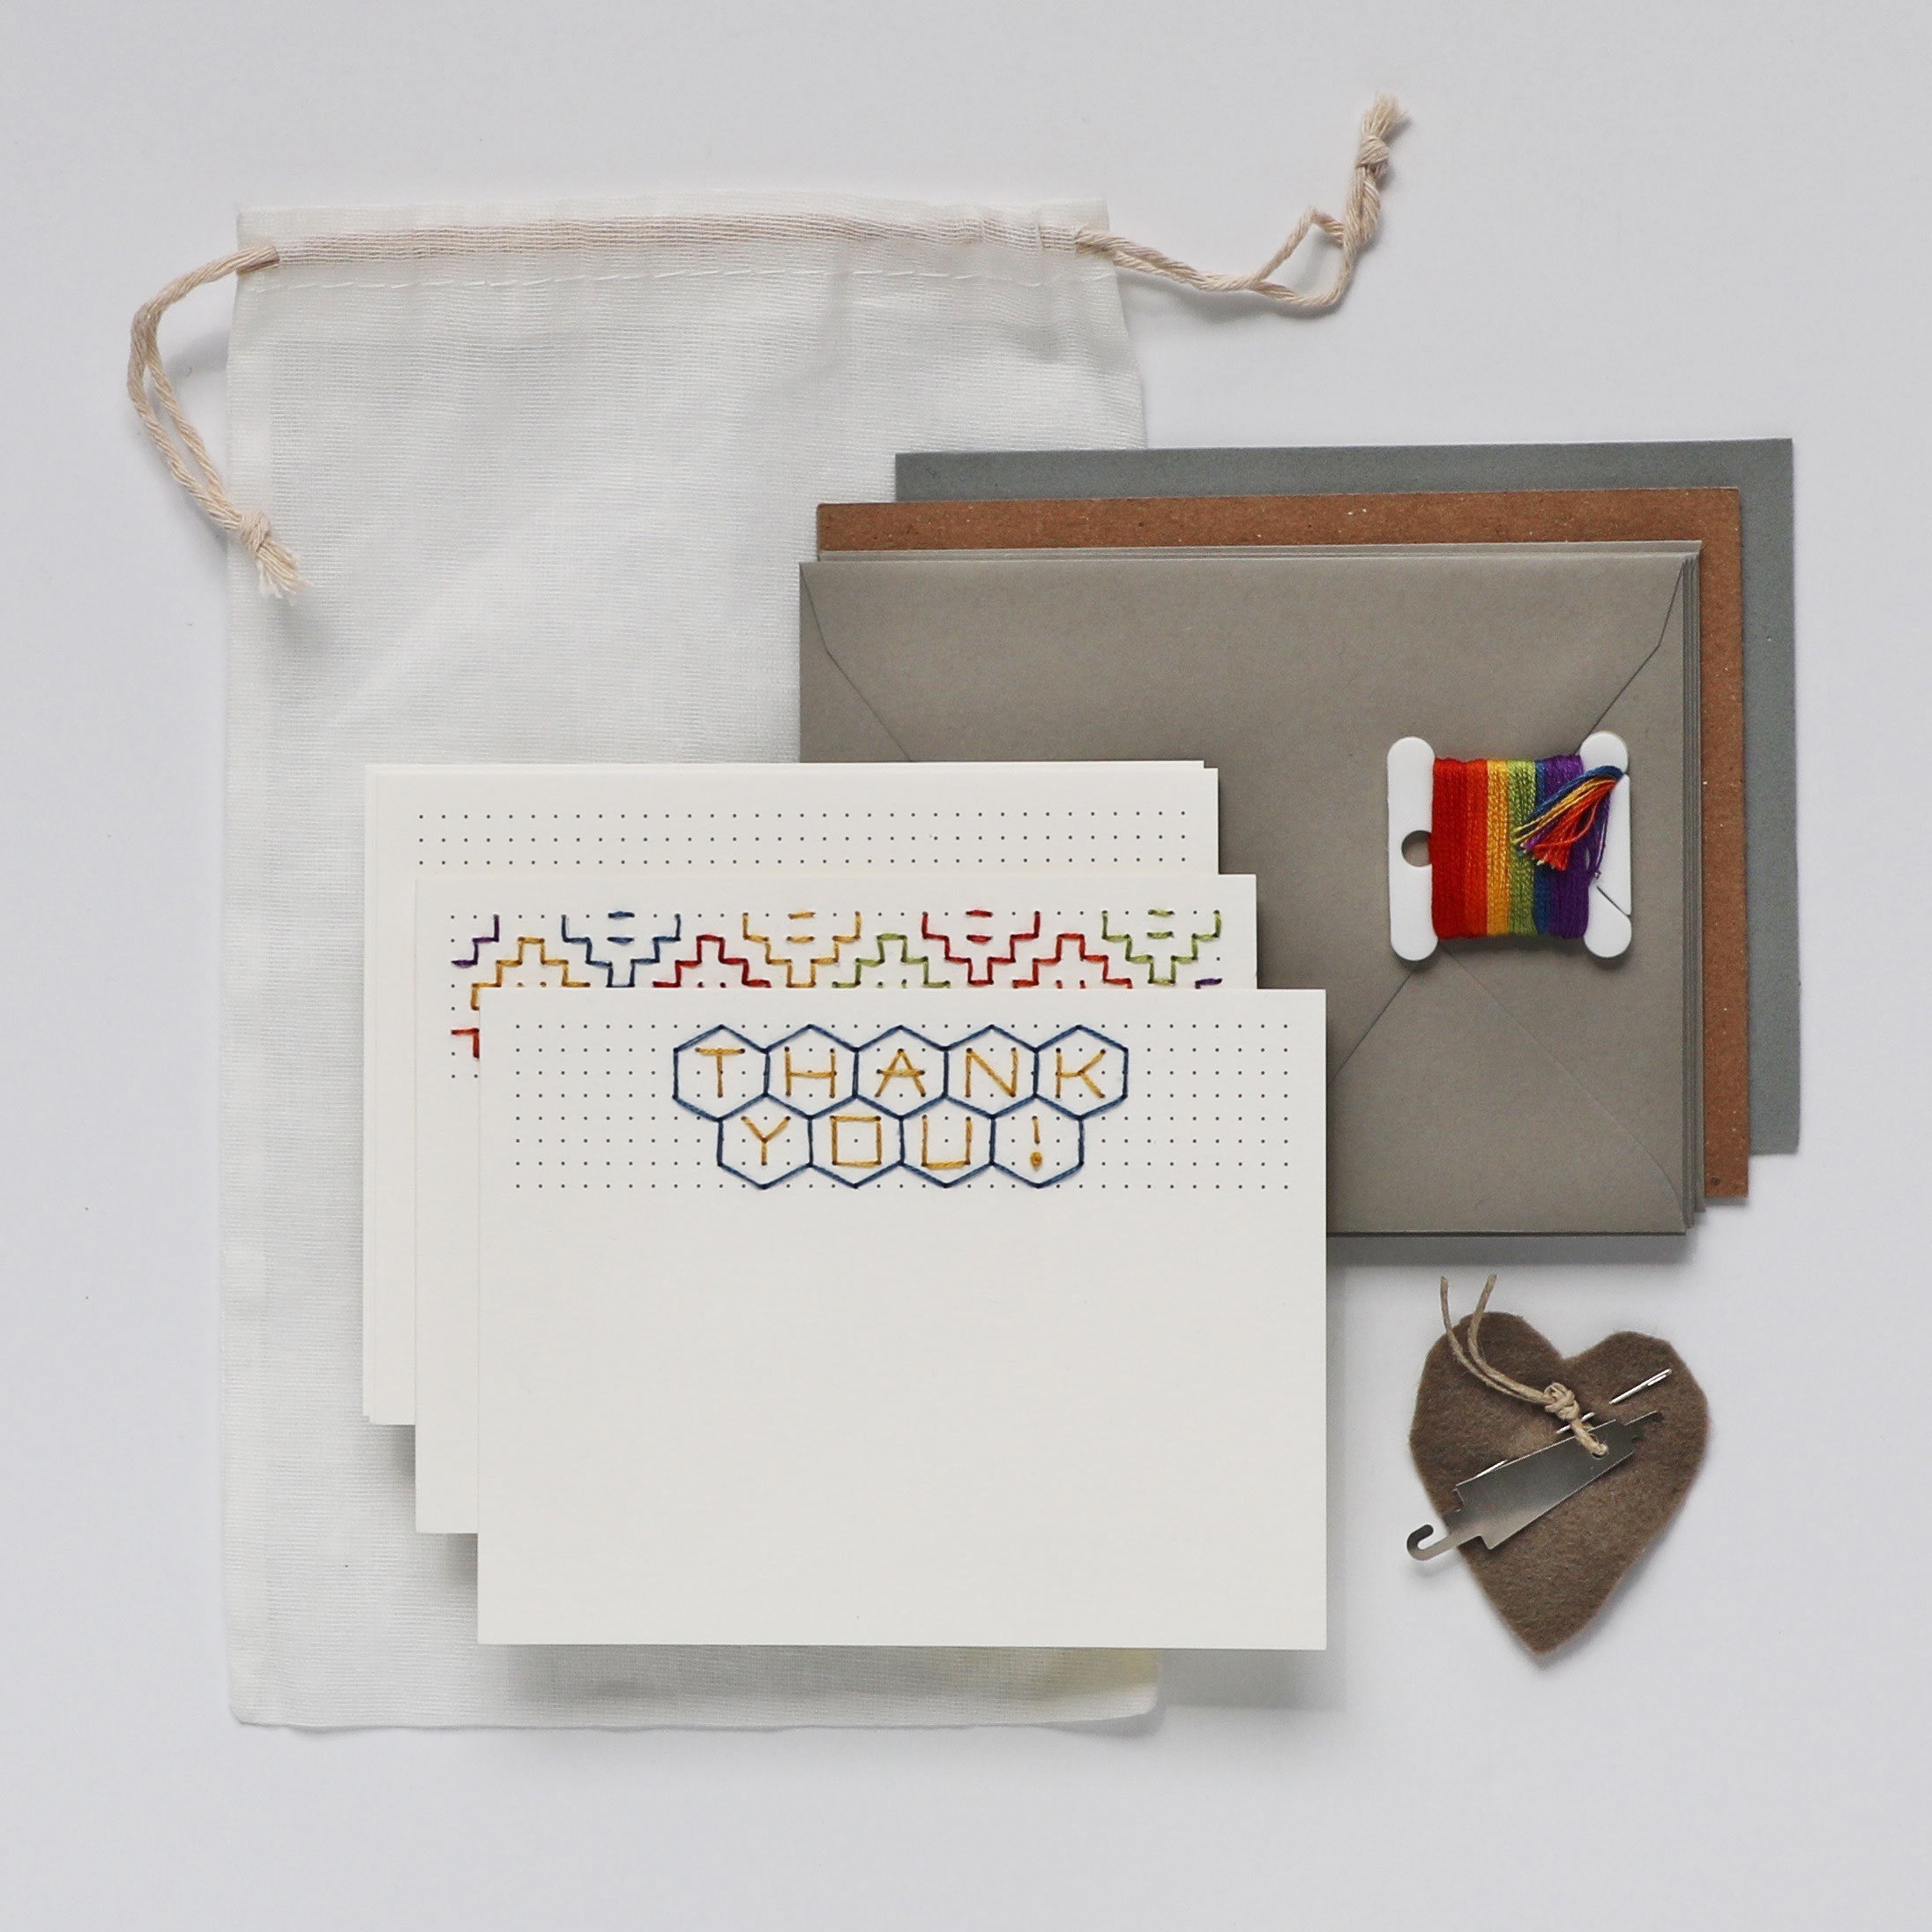 Stitcher's Choice Embroidered Greeting Card Kit $18